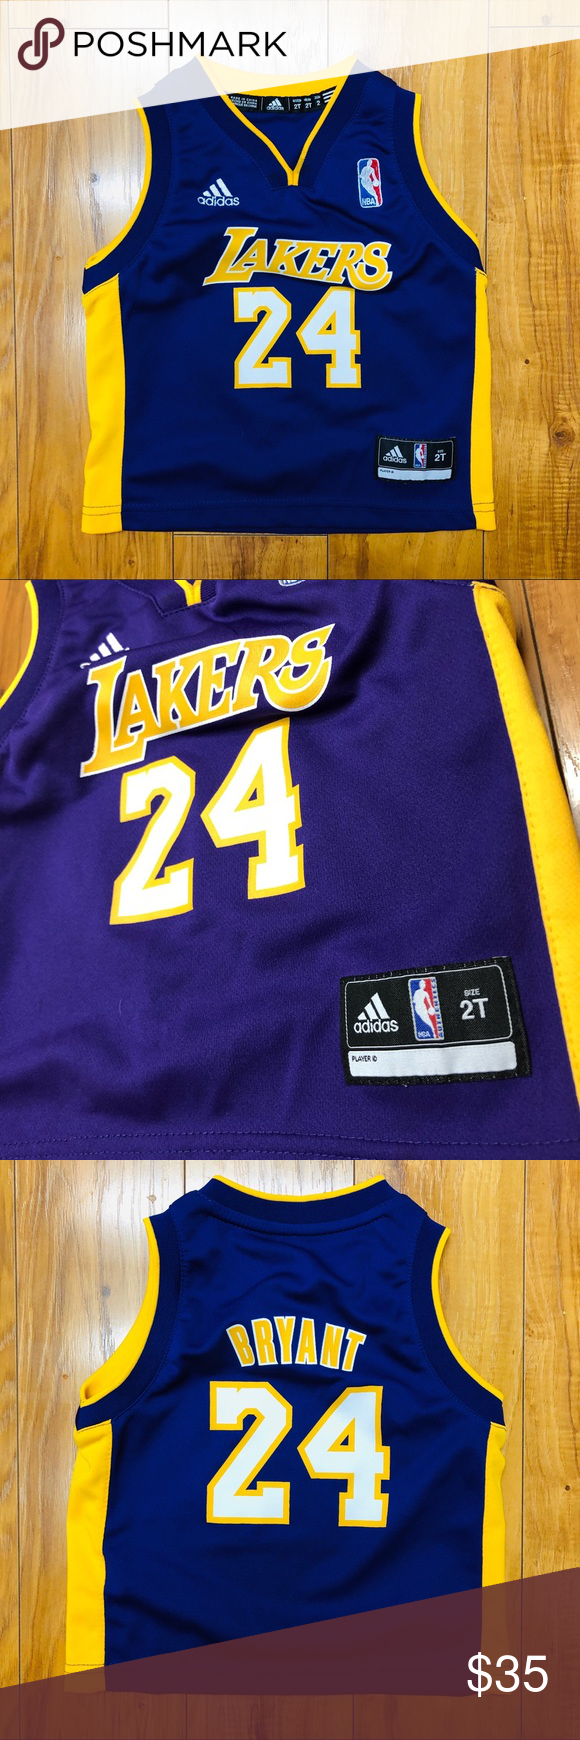 lakers 2t jersey online -